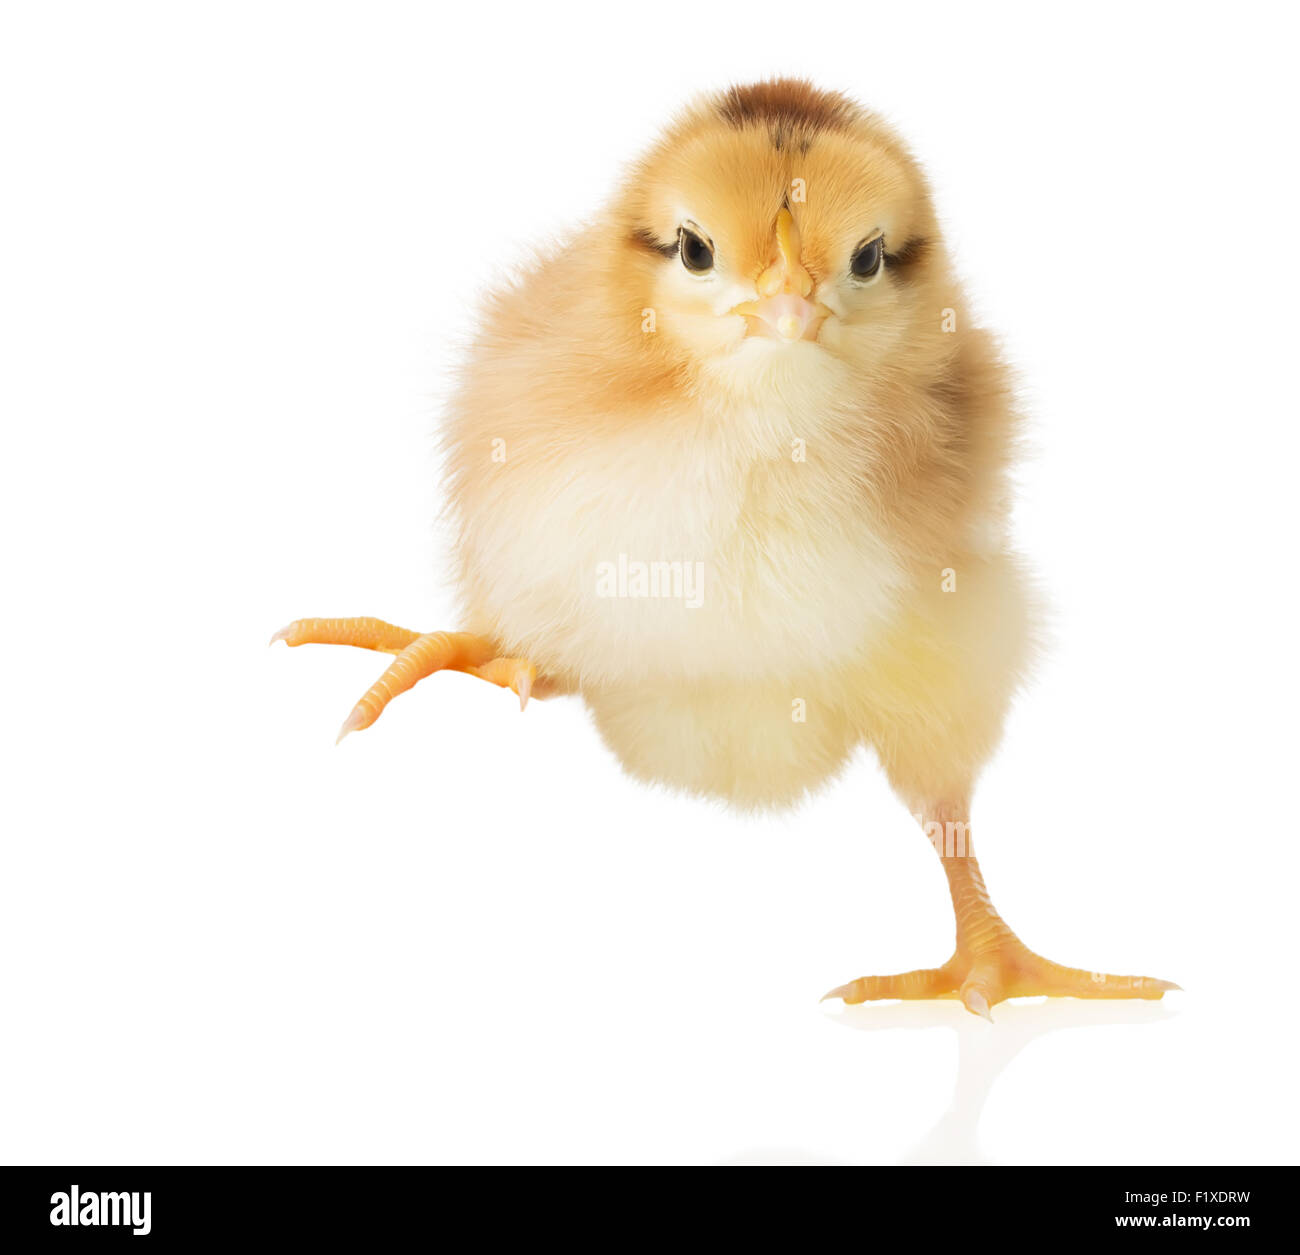 little chick on white background. - Stock Image